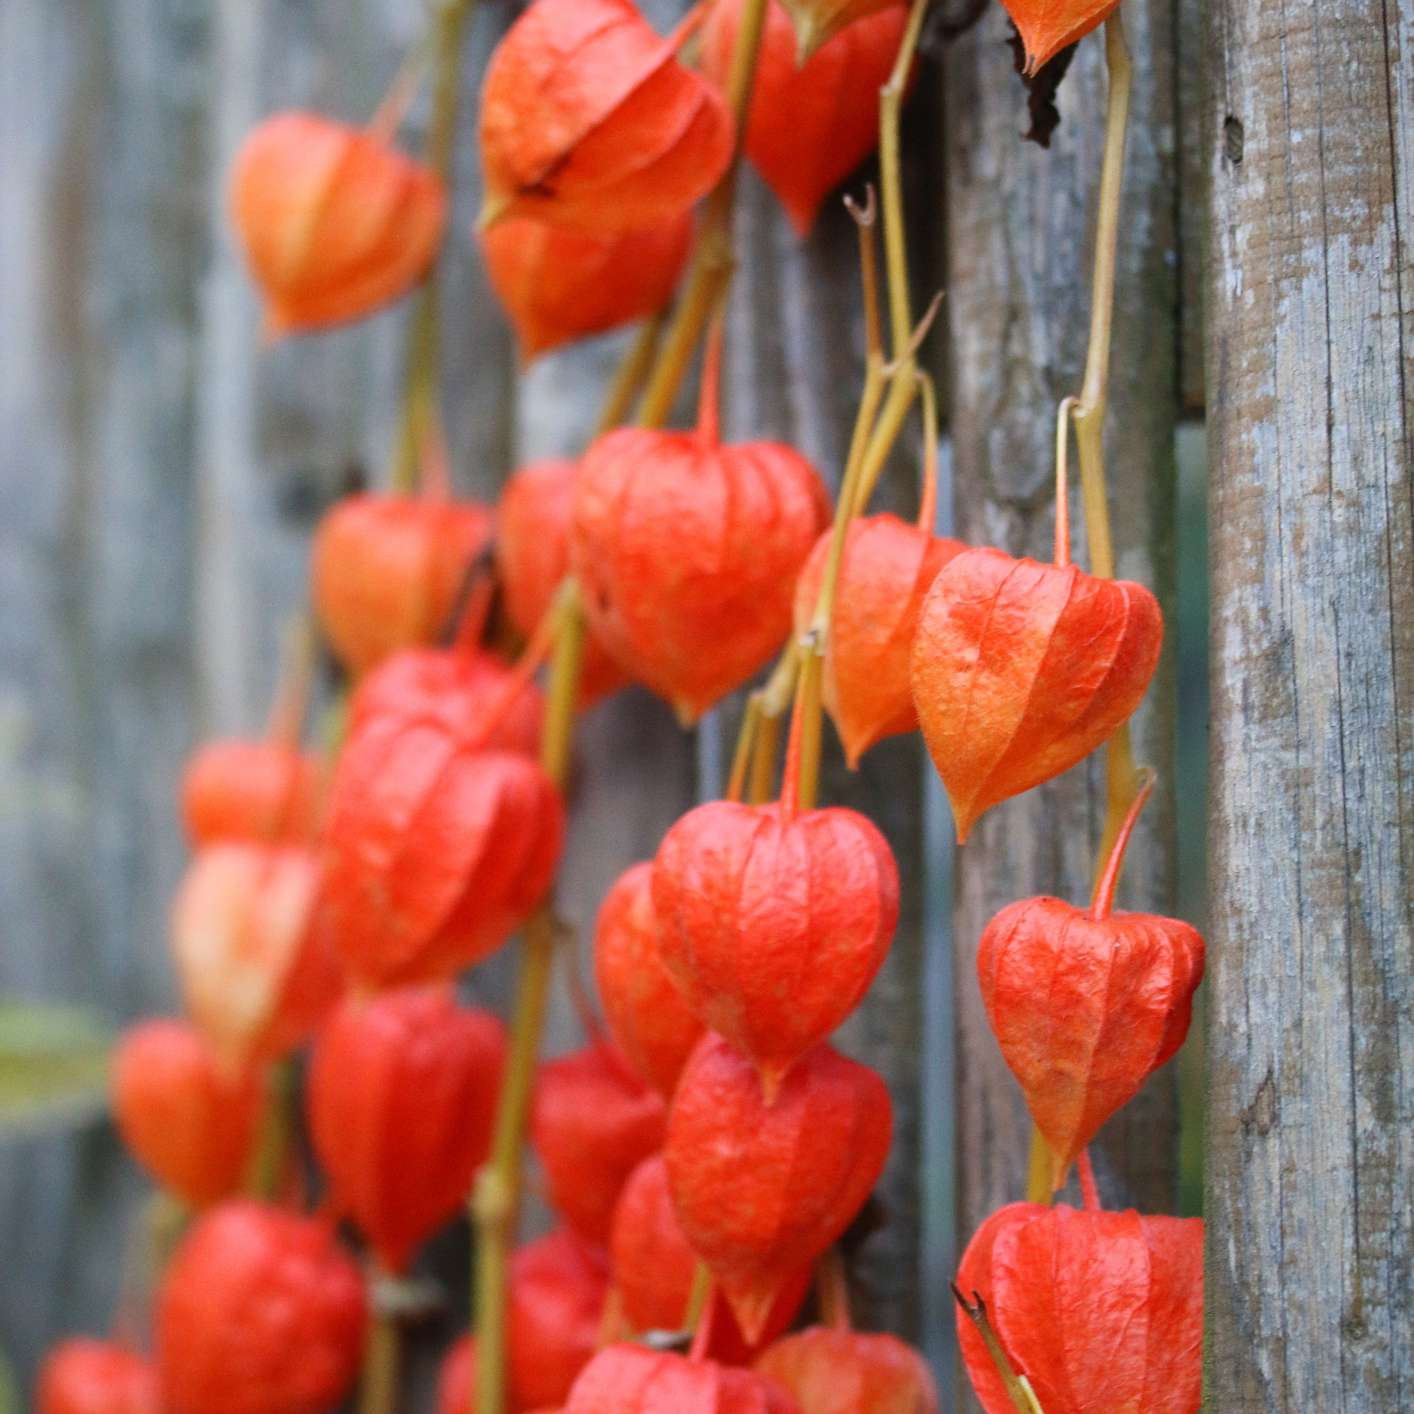 bright orange chinese lantern plant husks growing on yellow stems outdoors against wooden fence